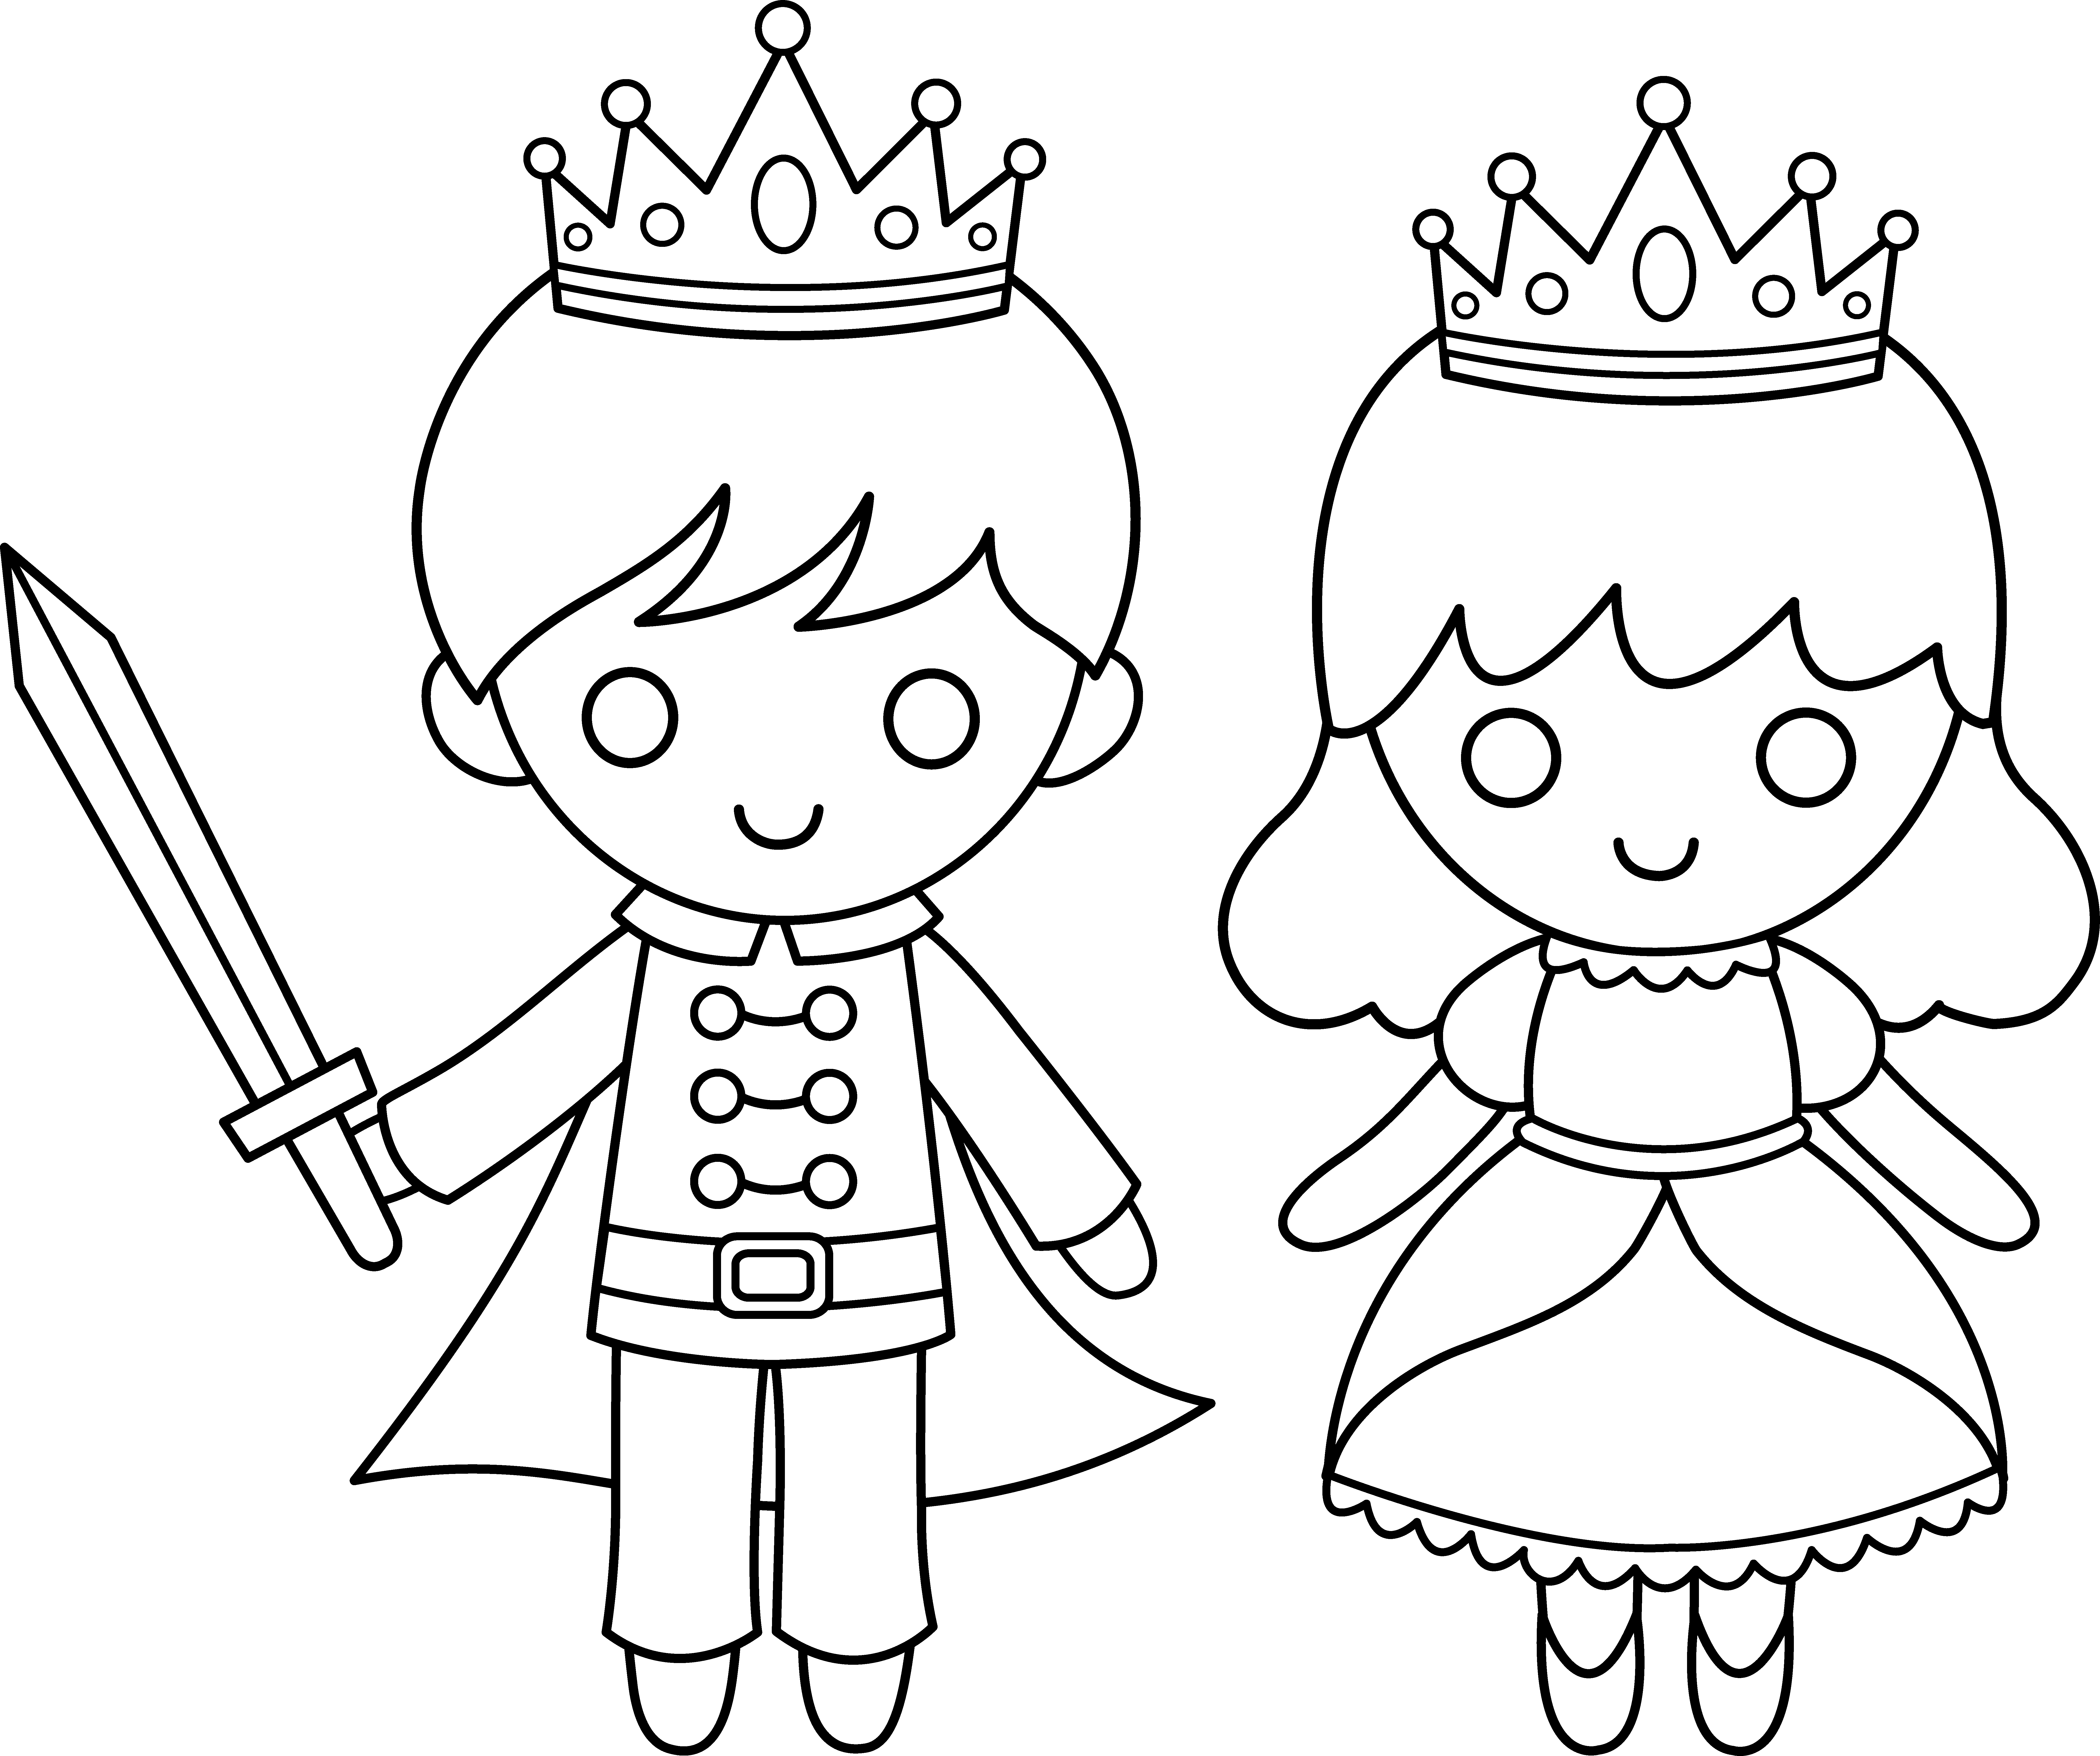 Prince And Princess Line Art Princess Coloring Pages Disney Princess Drawings Princess Coloring